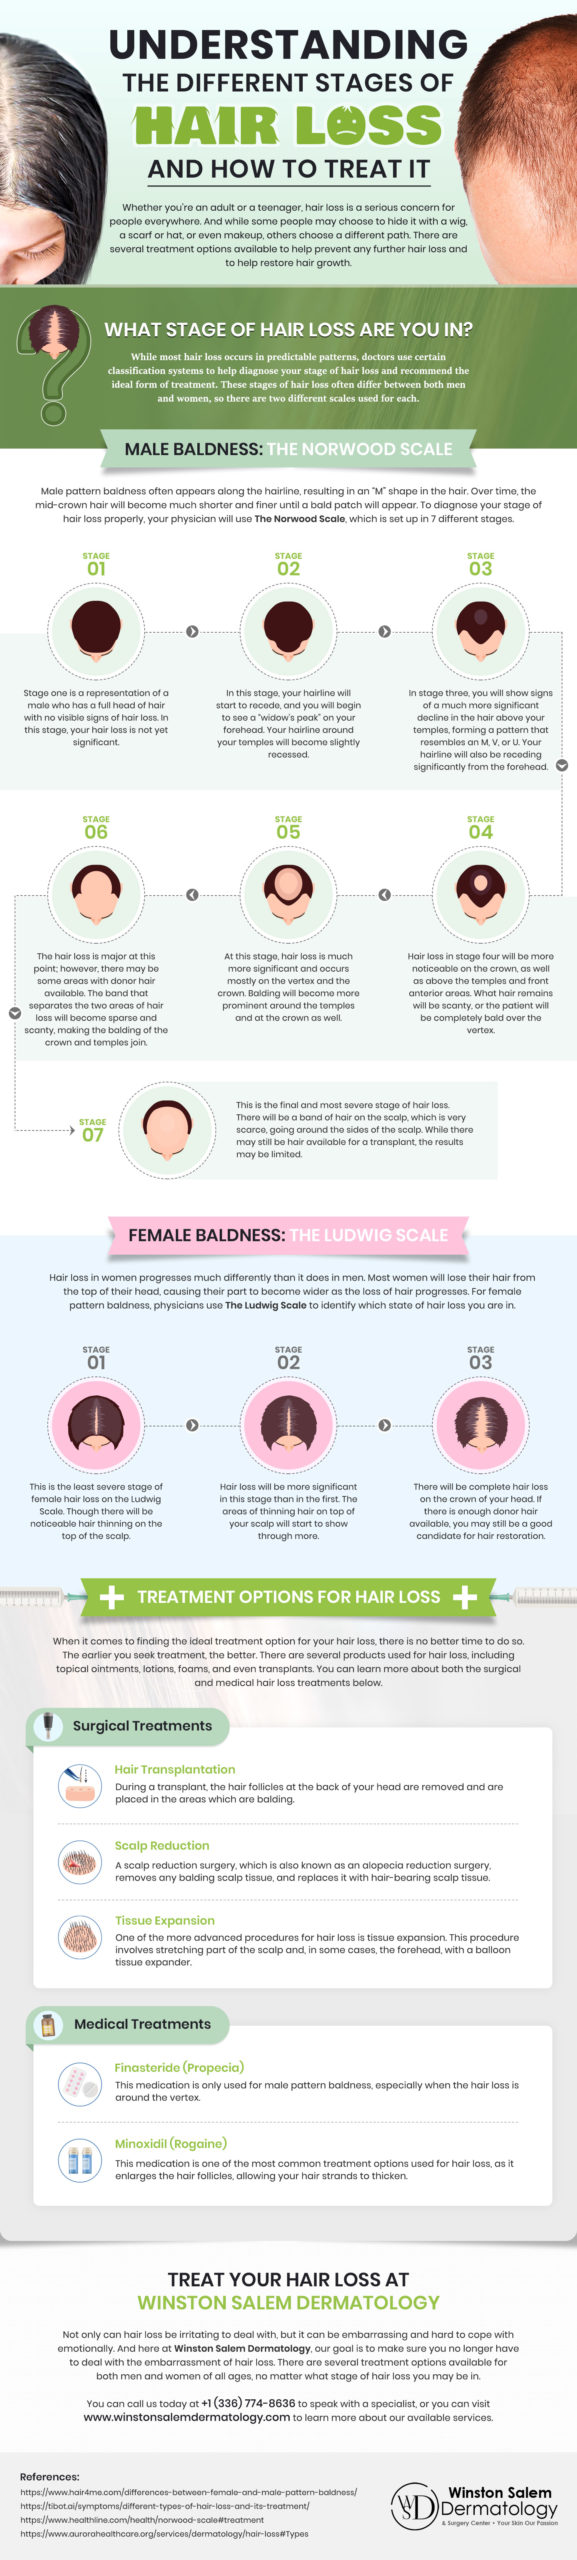 Understanding the Different Stages of Hair Loss and How to Treat It